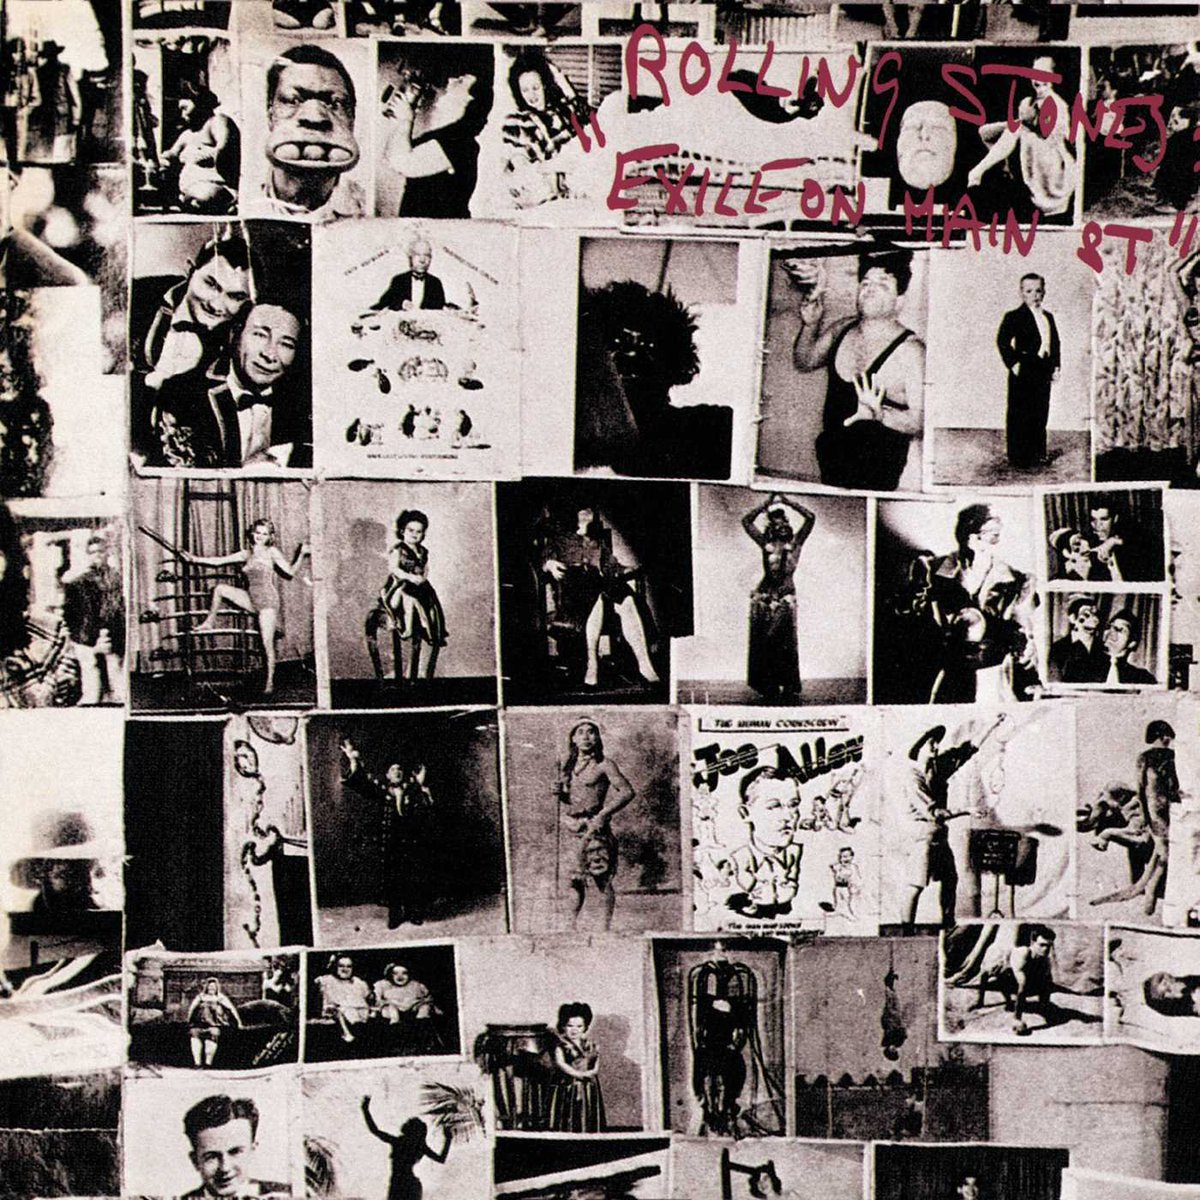 Since Keith Richards is trending, I'll just remind you that Exile on Main St. is one of the best albums ever made.